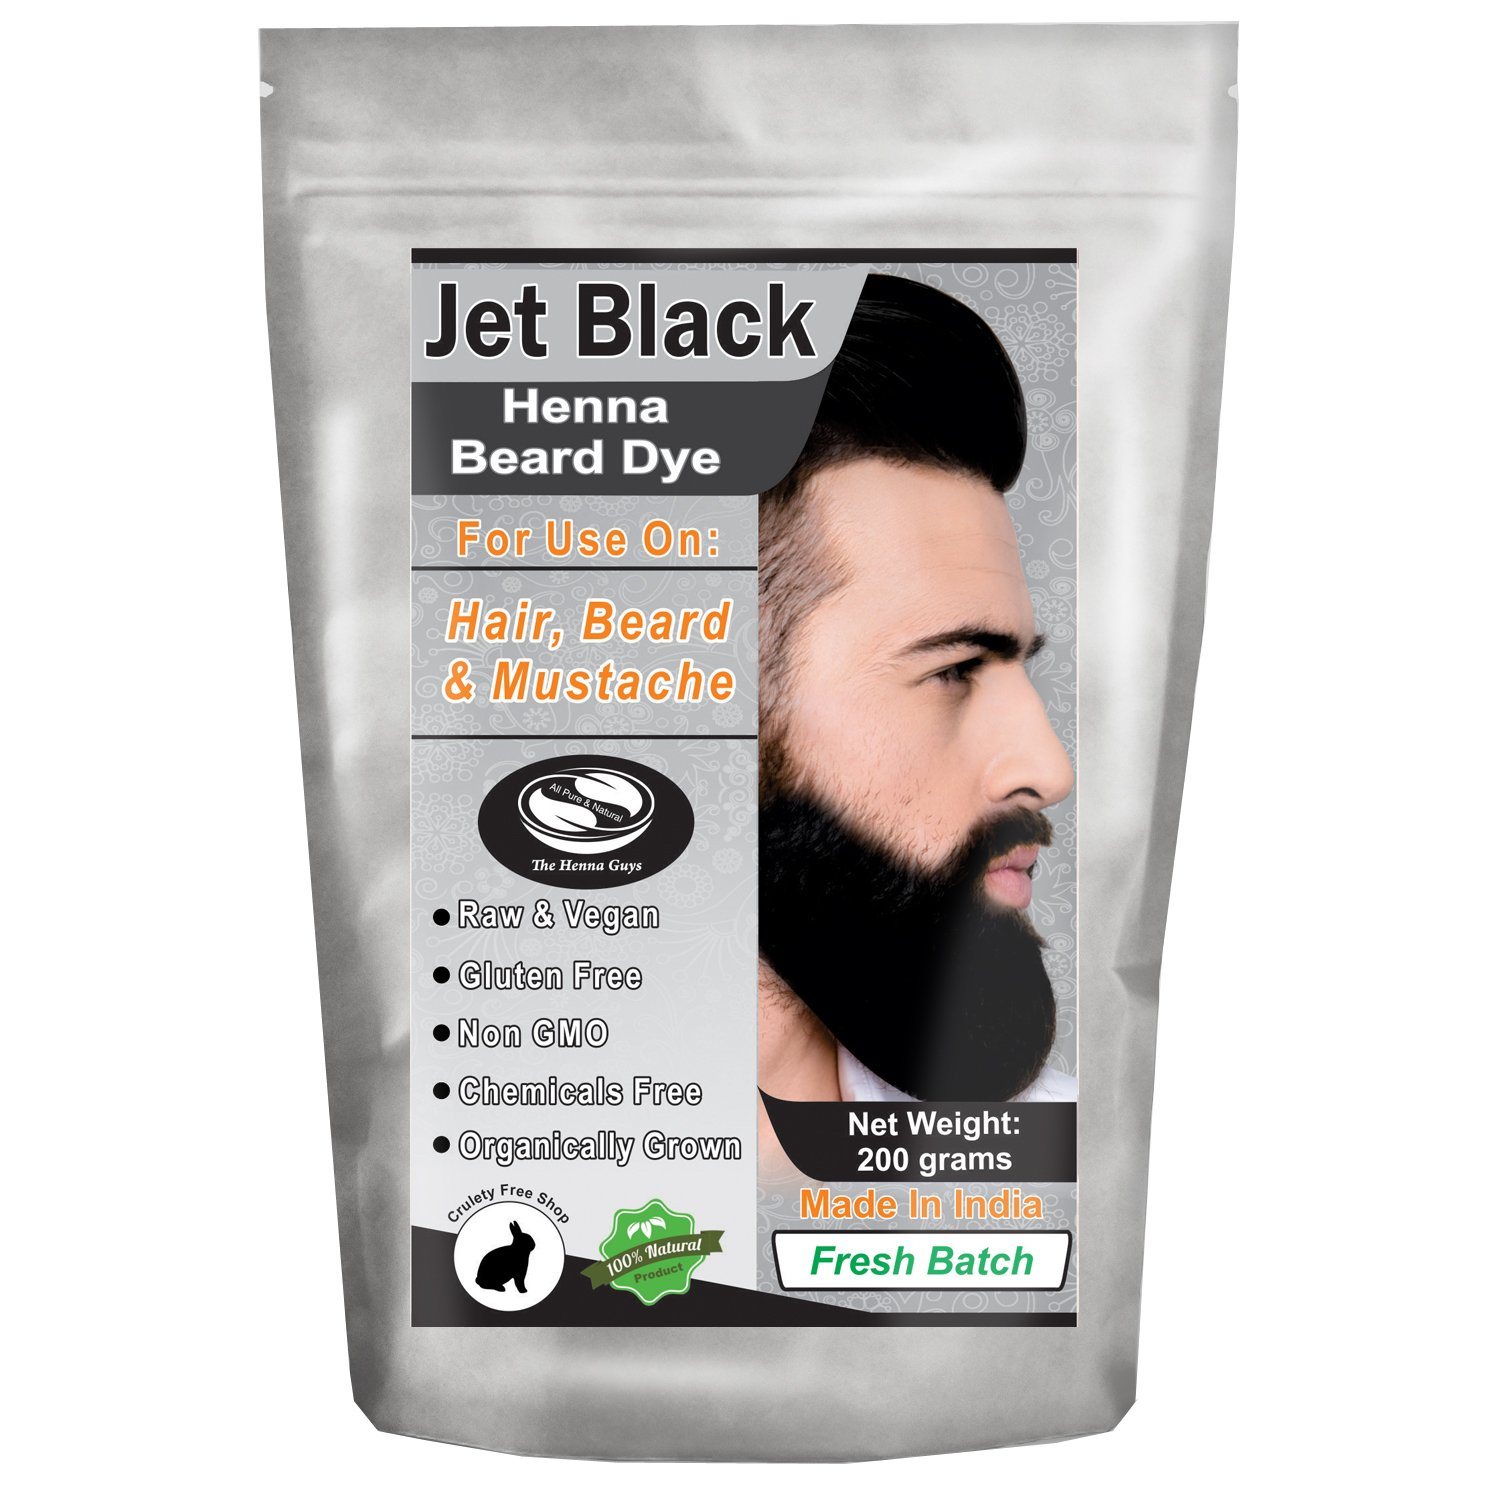 1 Pack of Jet Black Henna Beard Dye for Men - 100% Natural & Chemical Free Dye for Hair, Beard & Mustache - The Henna Guys ( 2 Step Process) by The Henna Guys